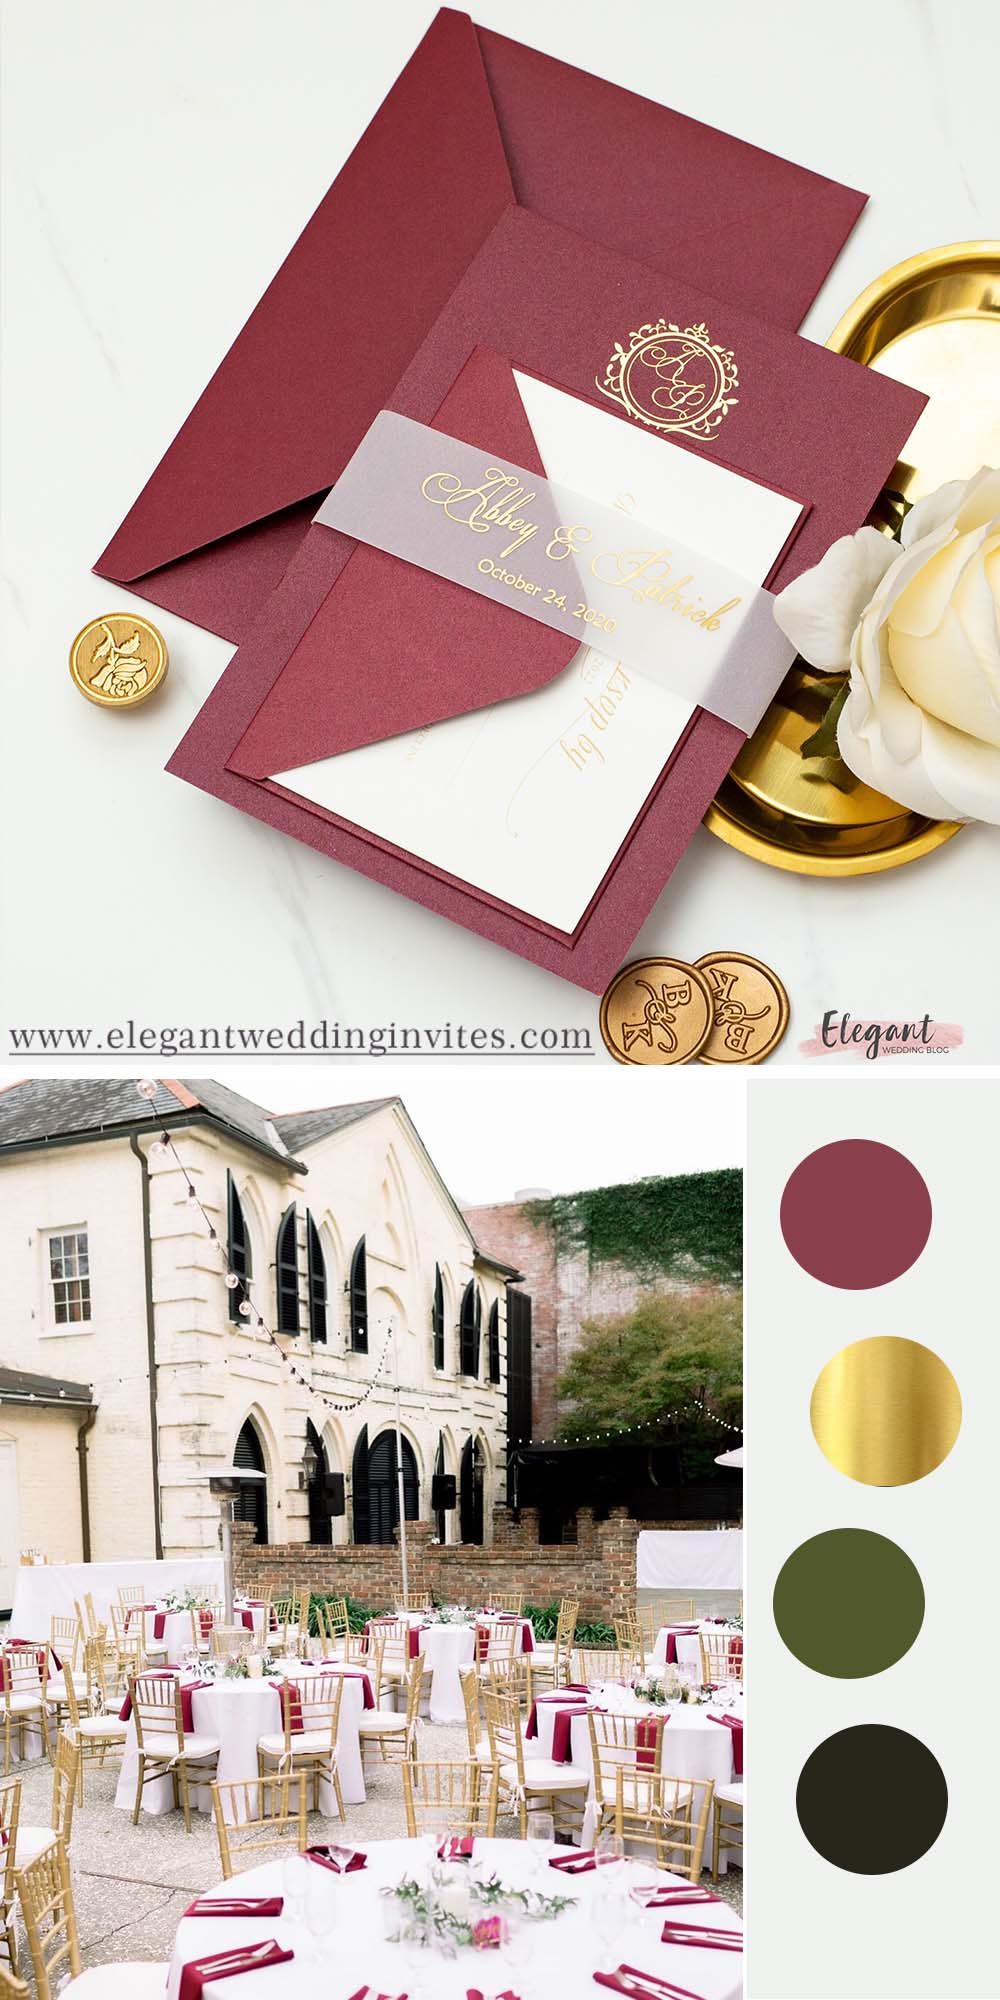 Merlot burgundy invitations with gold foil print and translucent vellum belly band